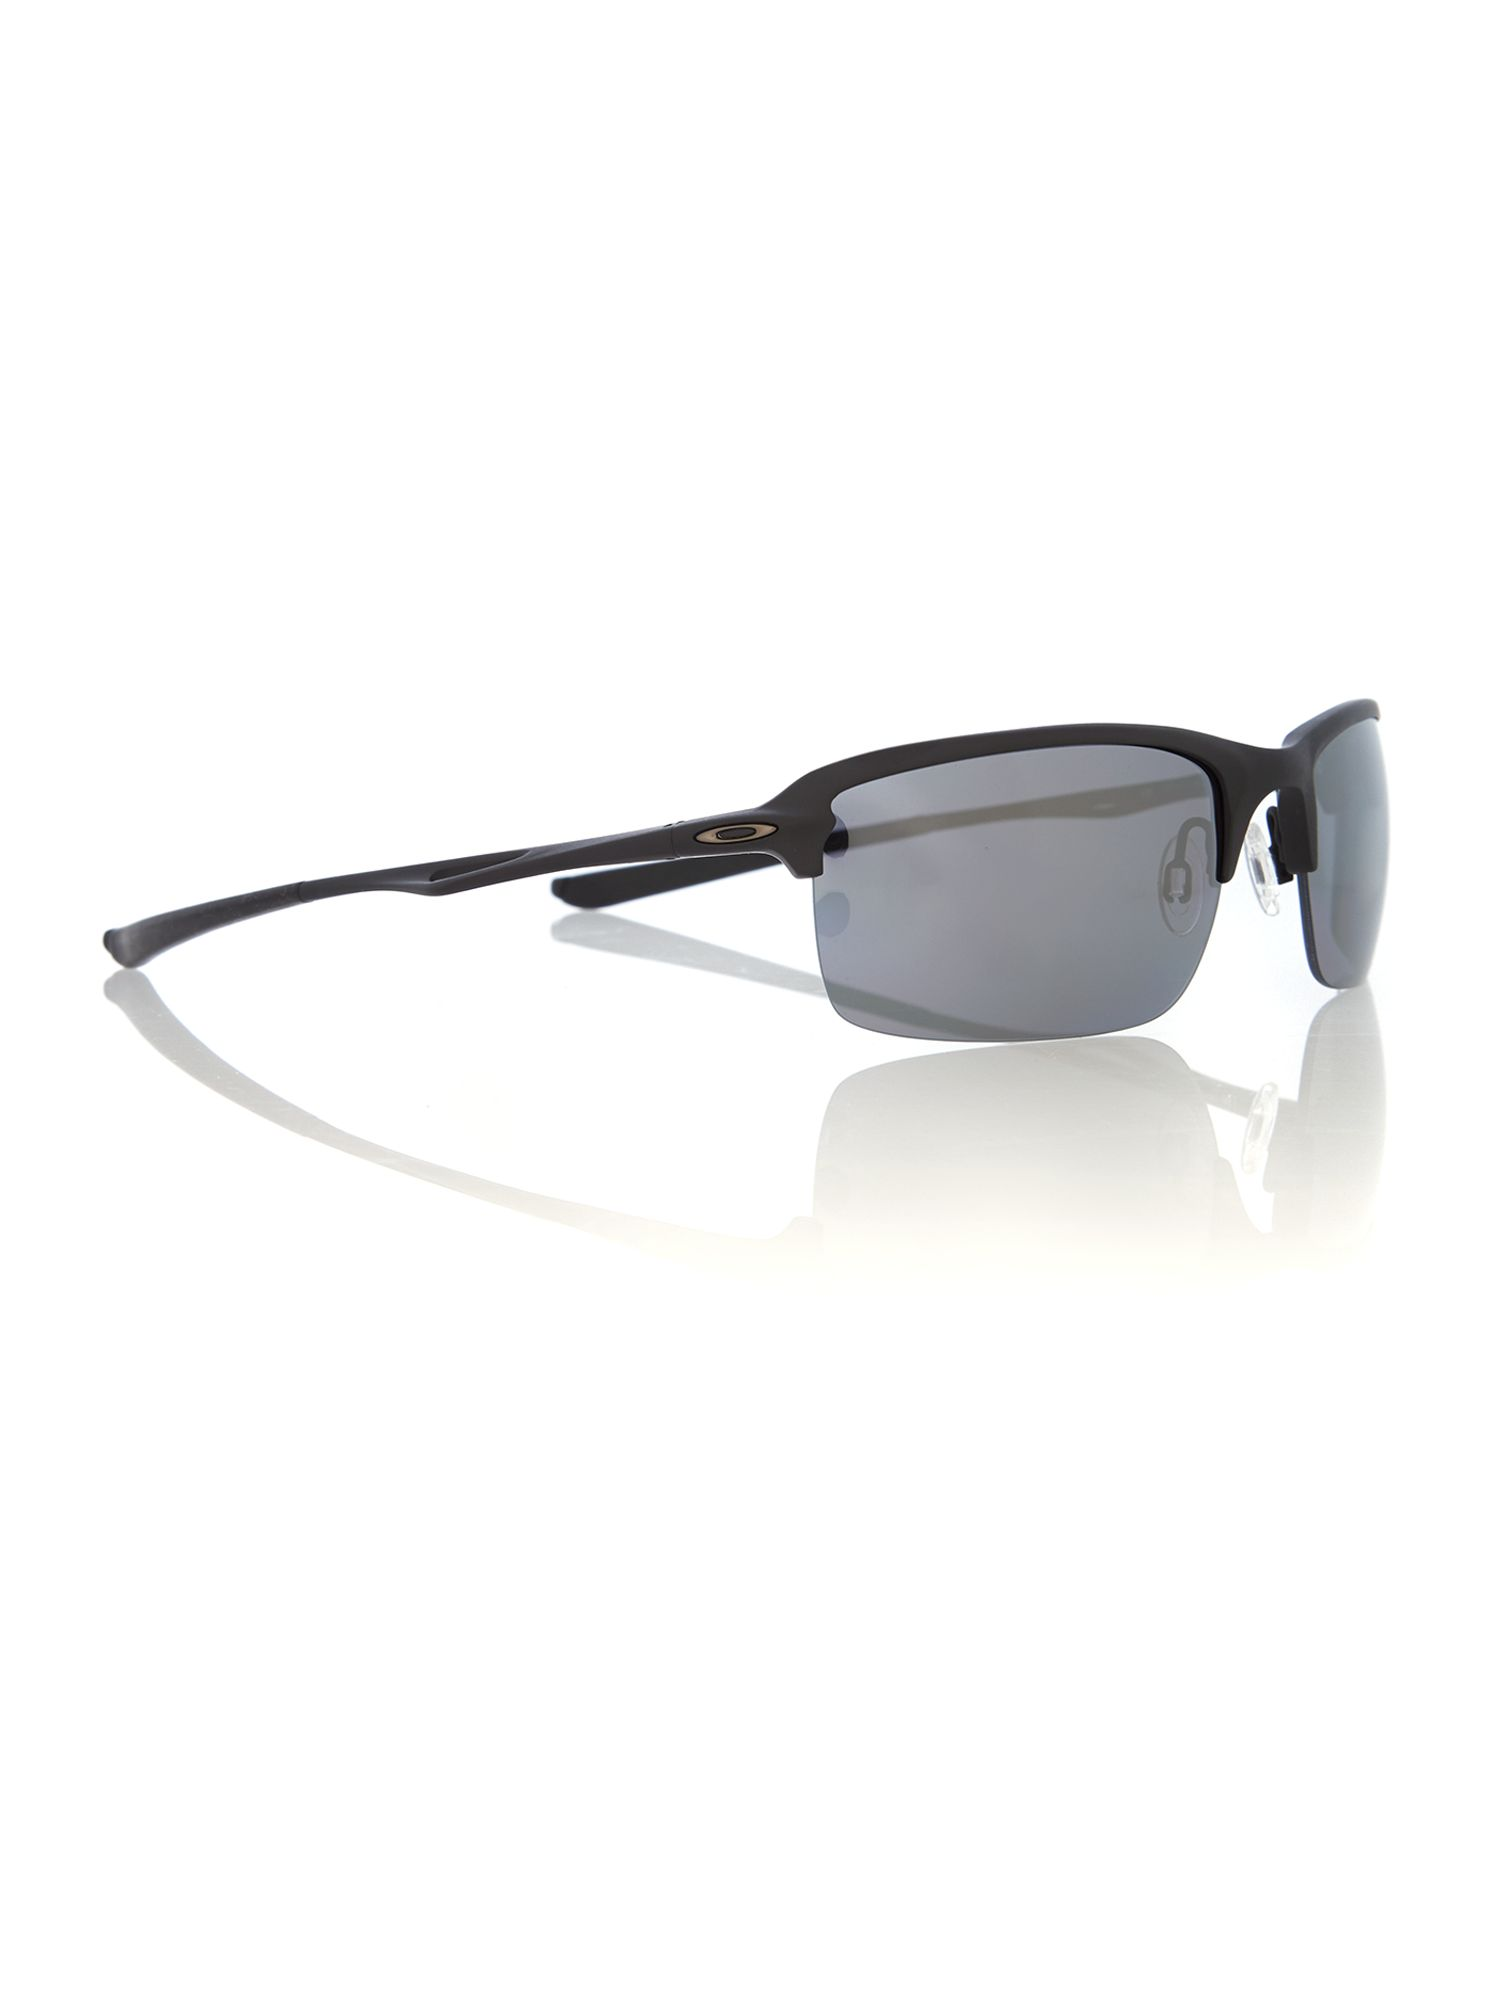 Men black iridium polarized rectangle sunglasses